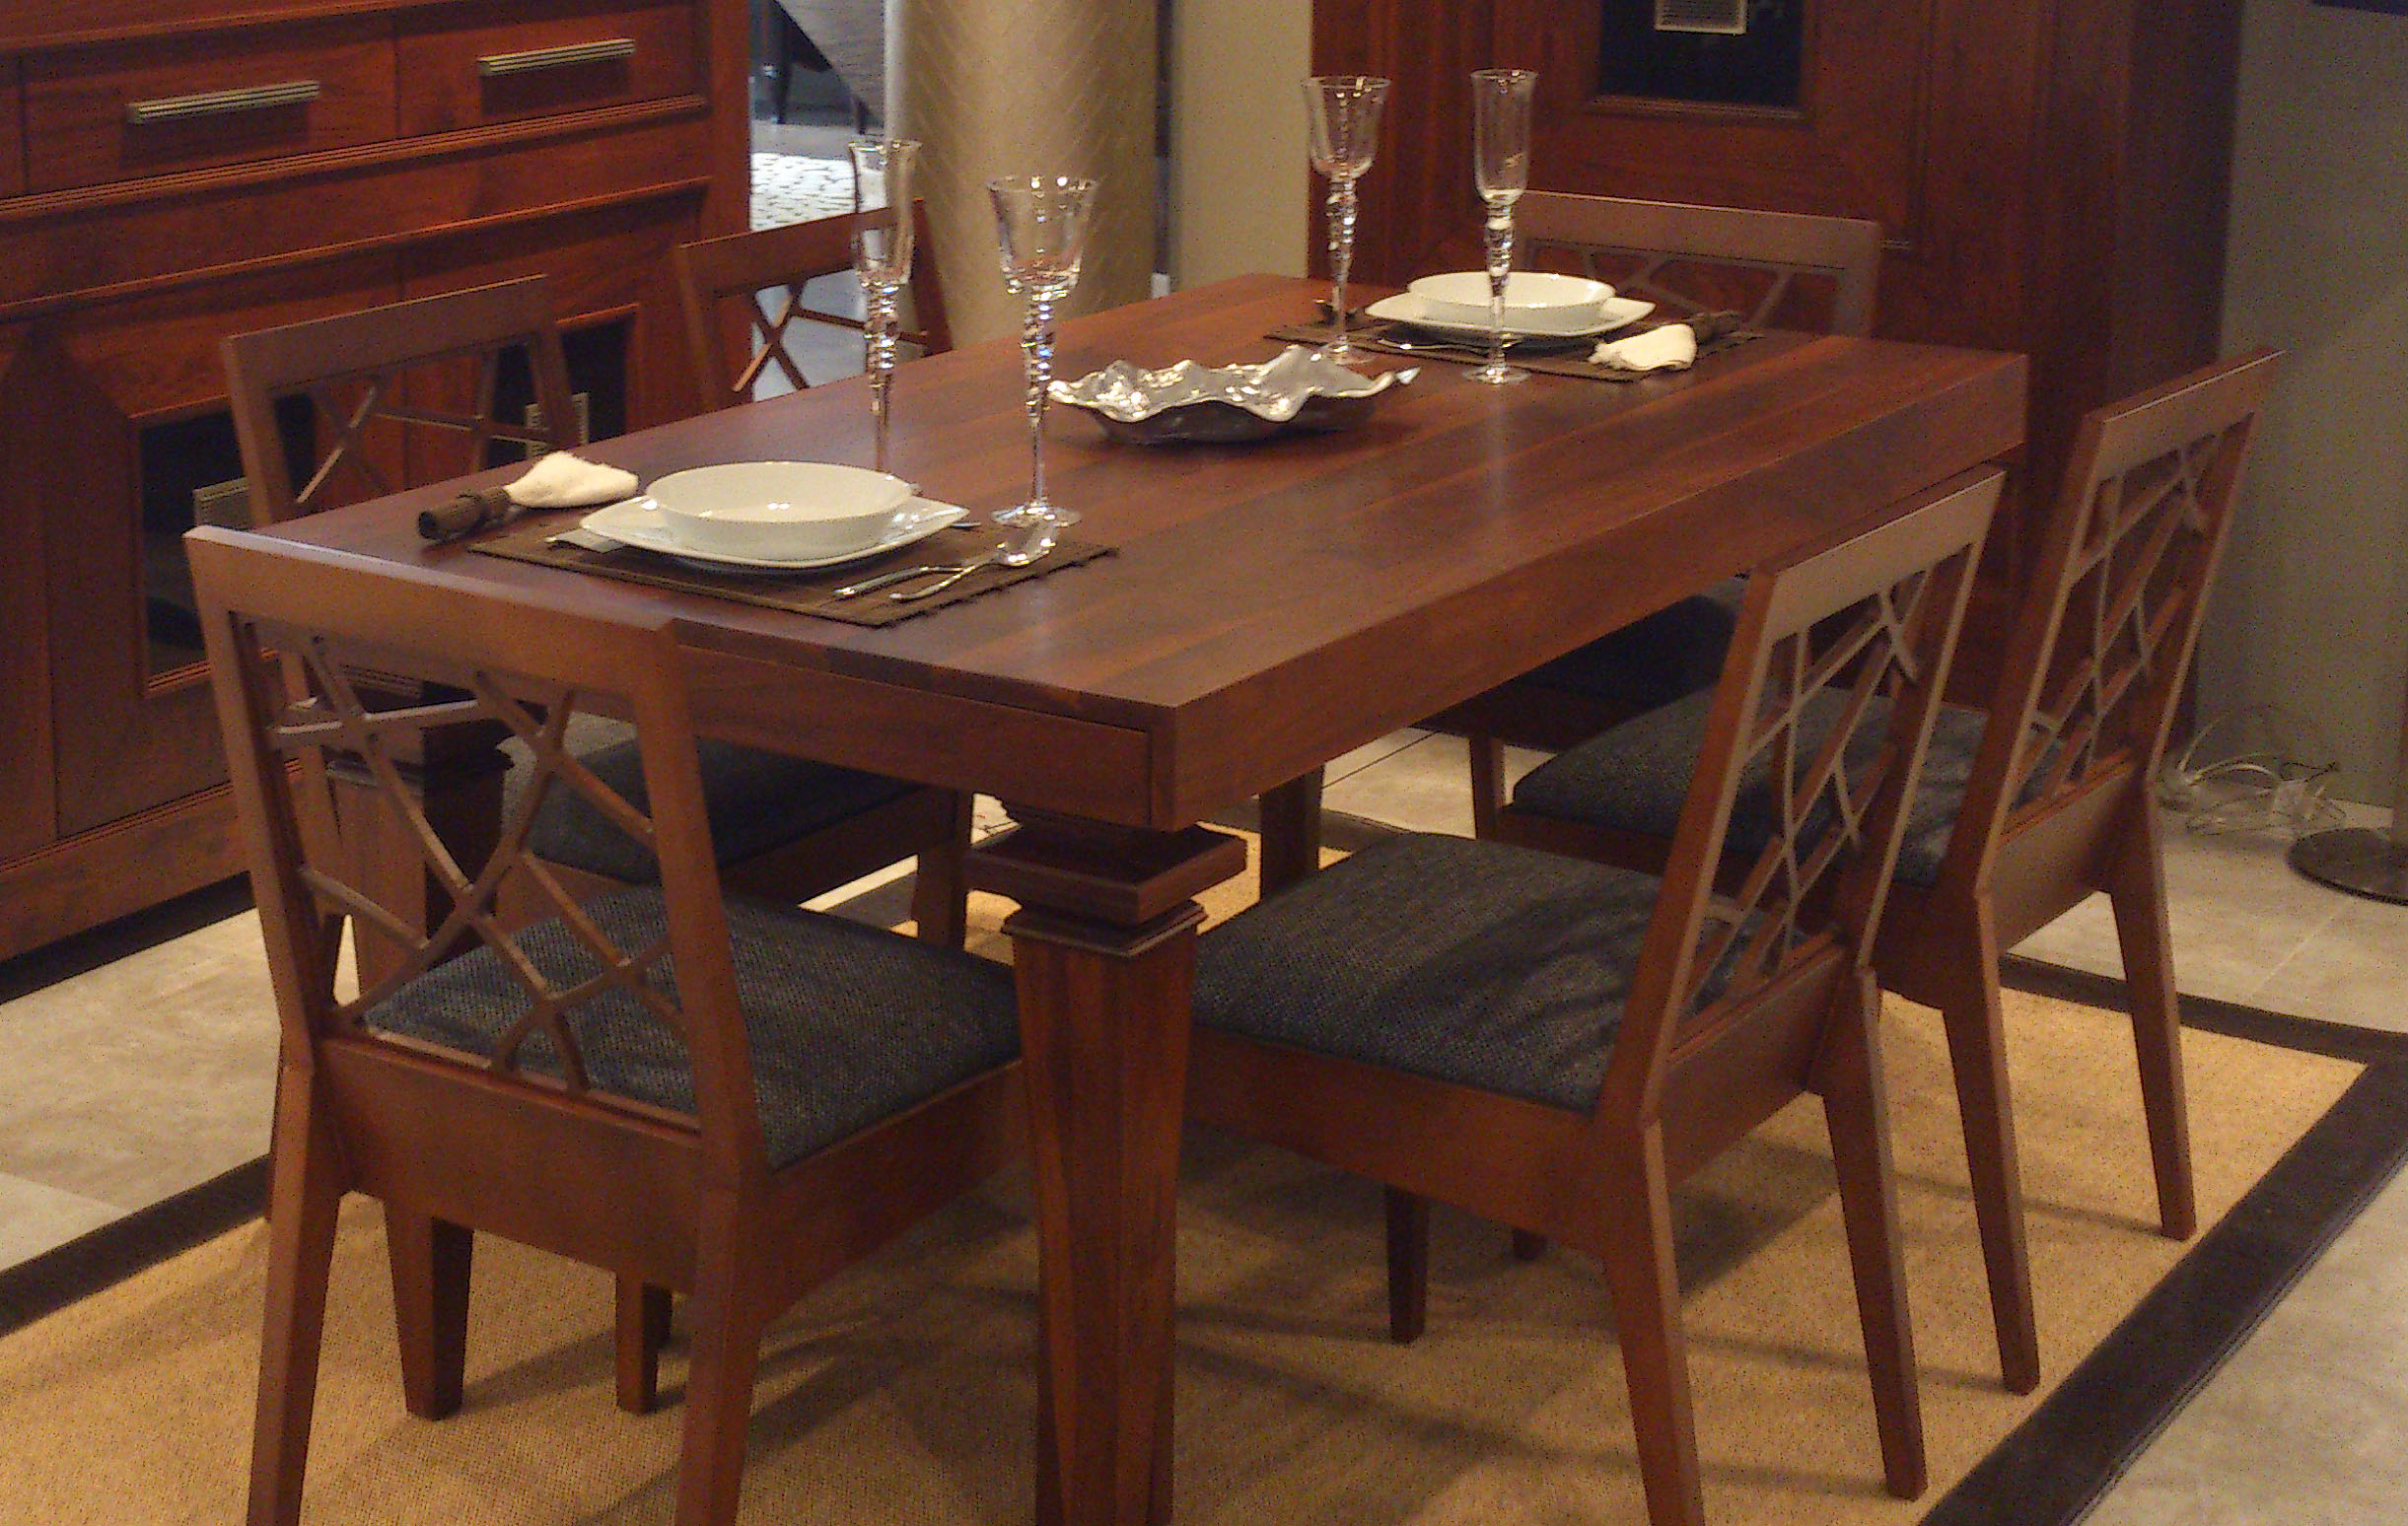 Comedor en madera nogal muebles rius outlet for Muebles madera maciza outlet